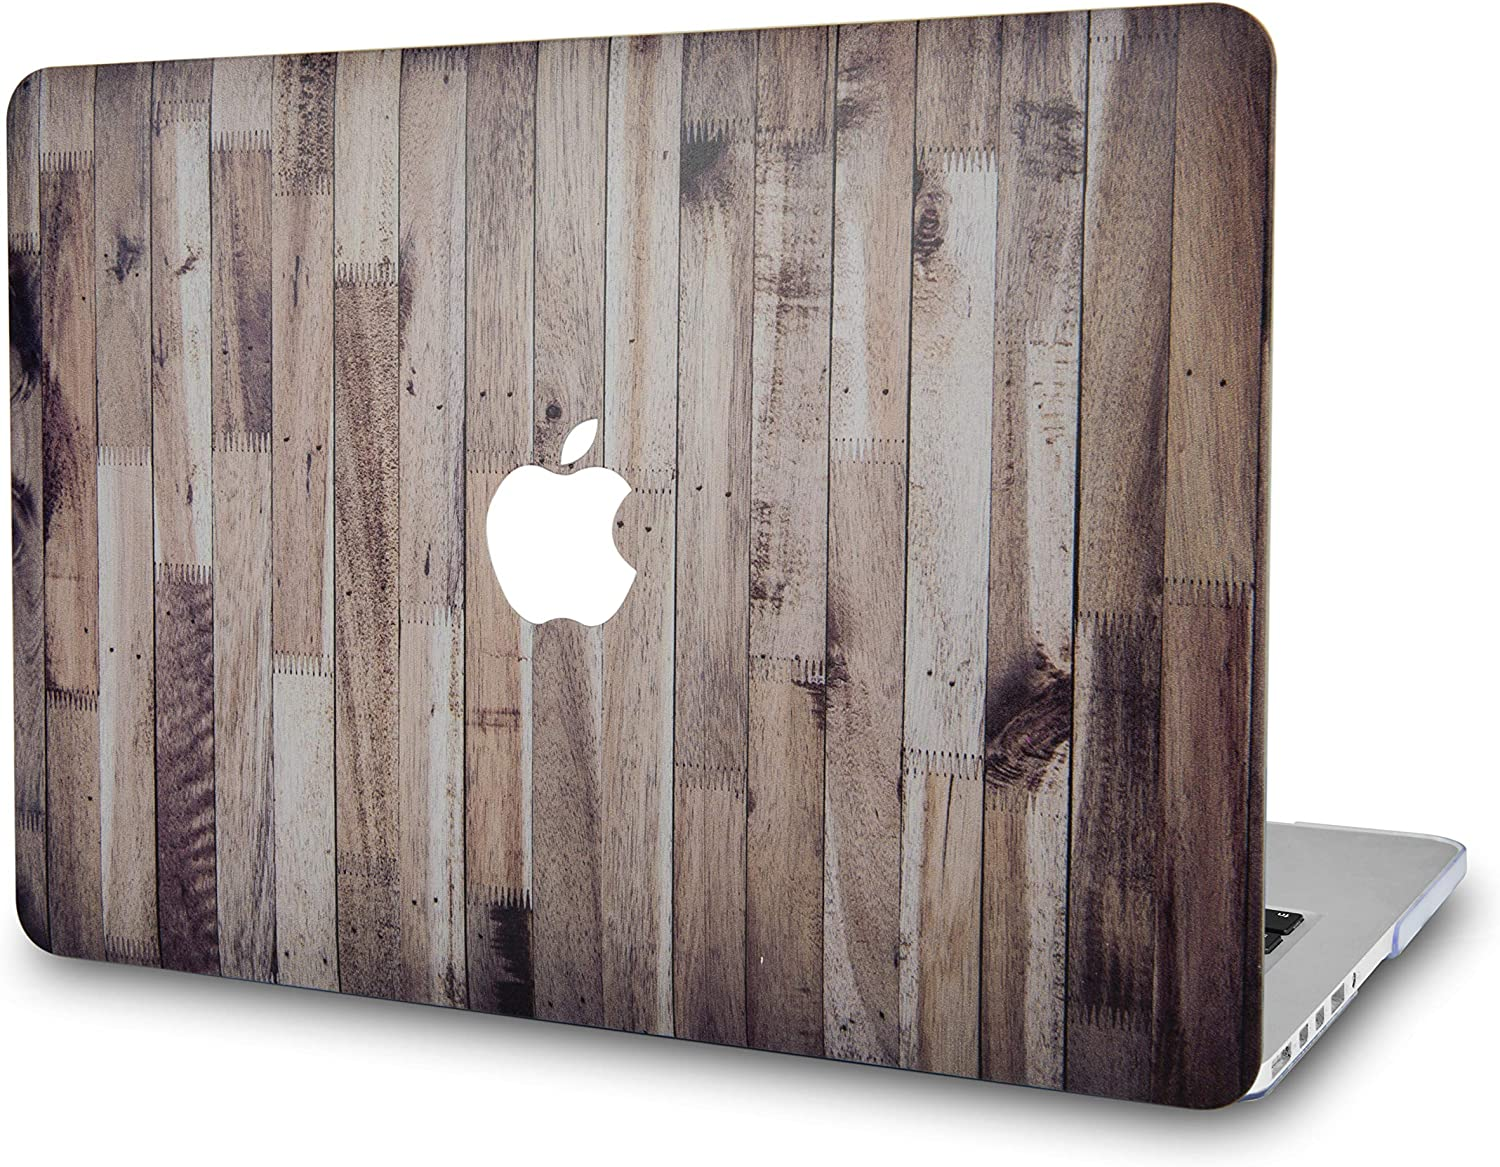 LuvCaseLaptopCaseforMacBookAir 13 Inch(2020/2019/2018) A2179/A1932 Retina Display (Touch ID) RubberizedPlasticHardShell Cover (Wooden)